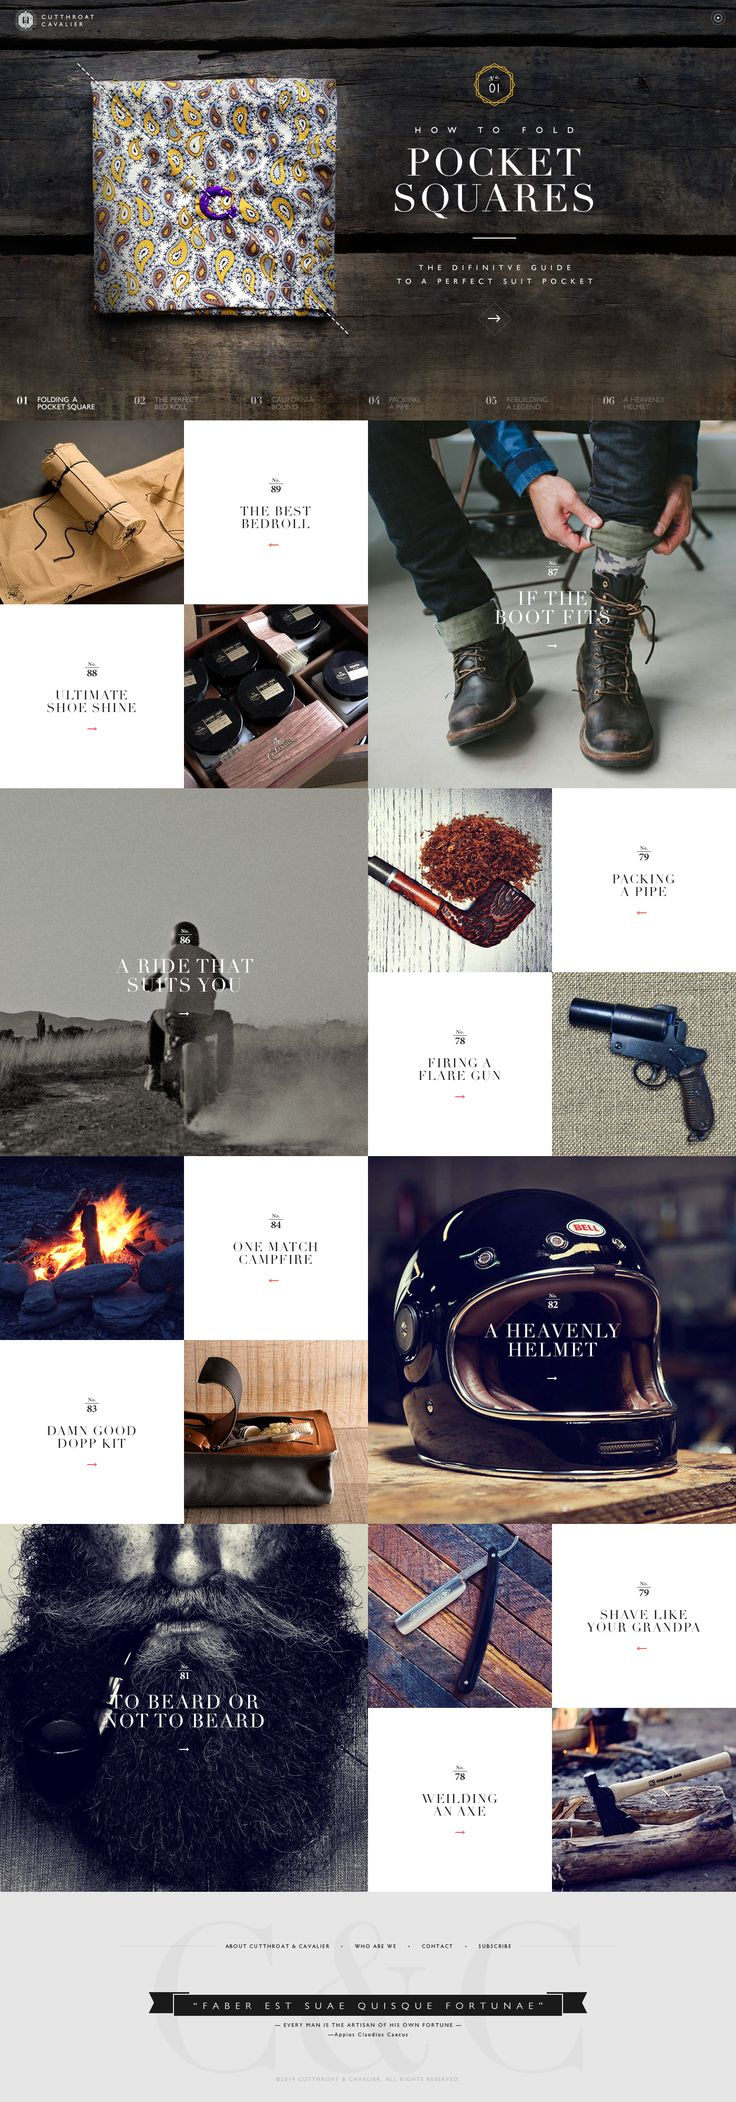 Cutthroatcavalier—nice use of grid for a website.. though the text may be too small and delicate.